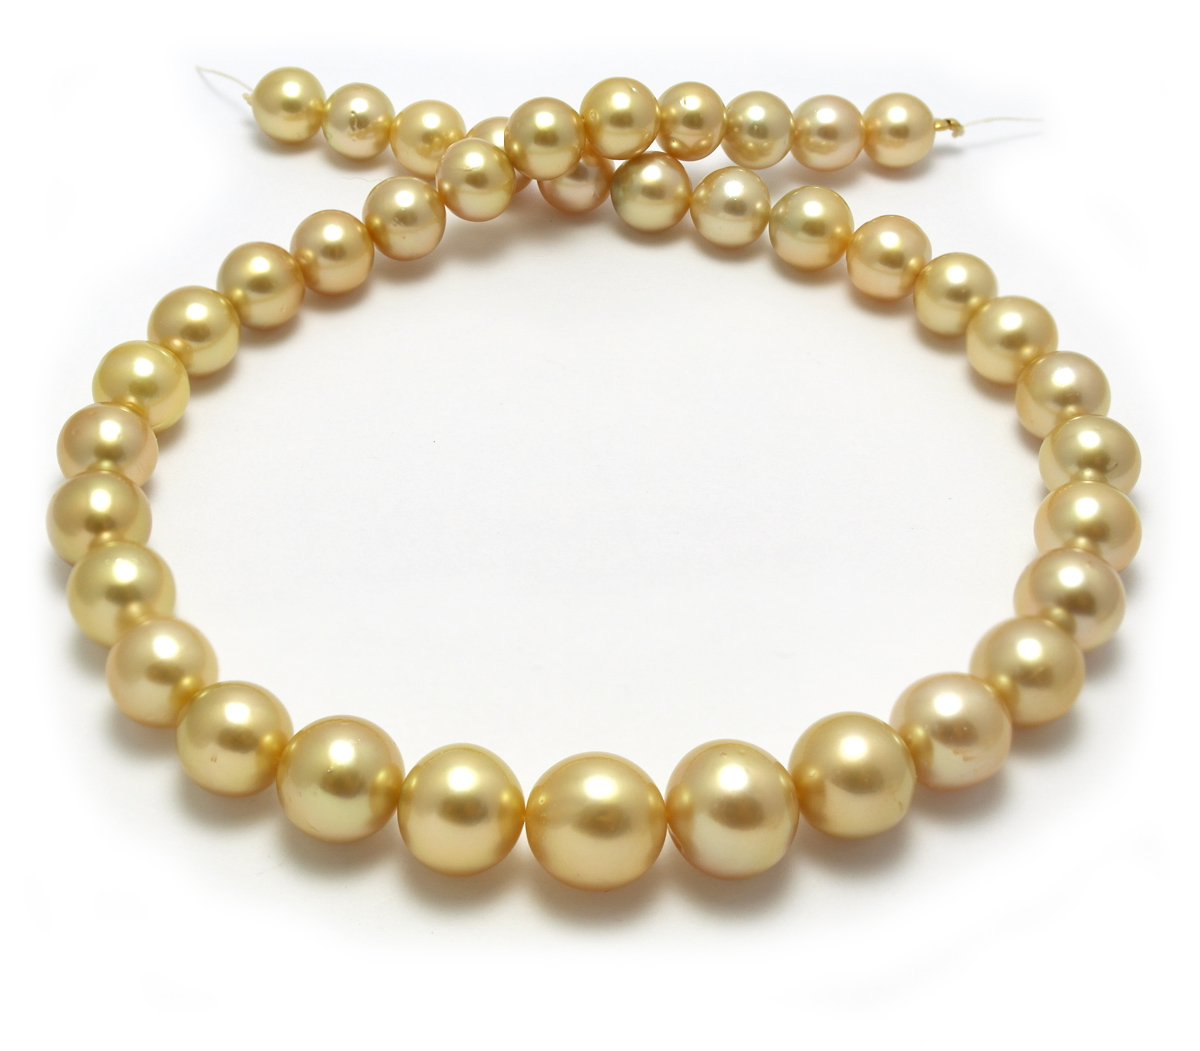 of with a pearls set order shipping online shop on item livemaster golden